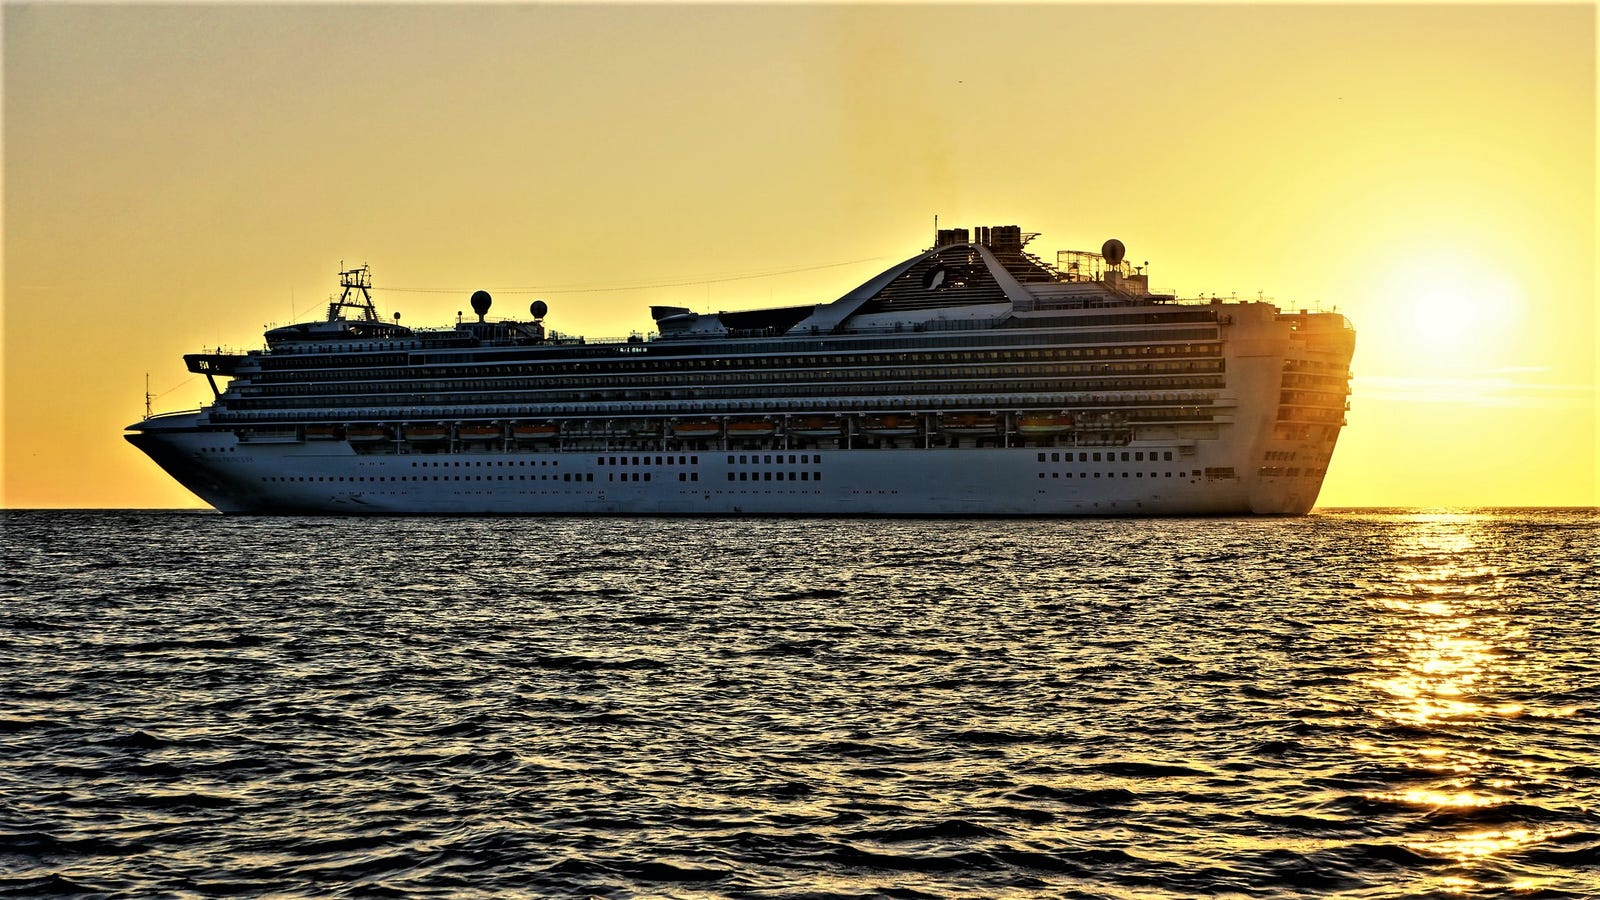 How To Avoid Getting Sick On A Cruise Ship